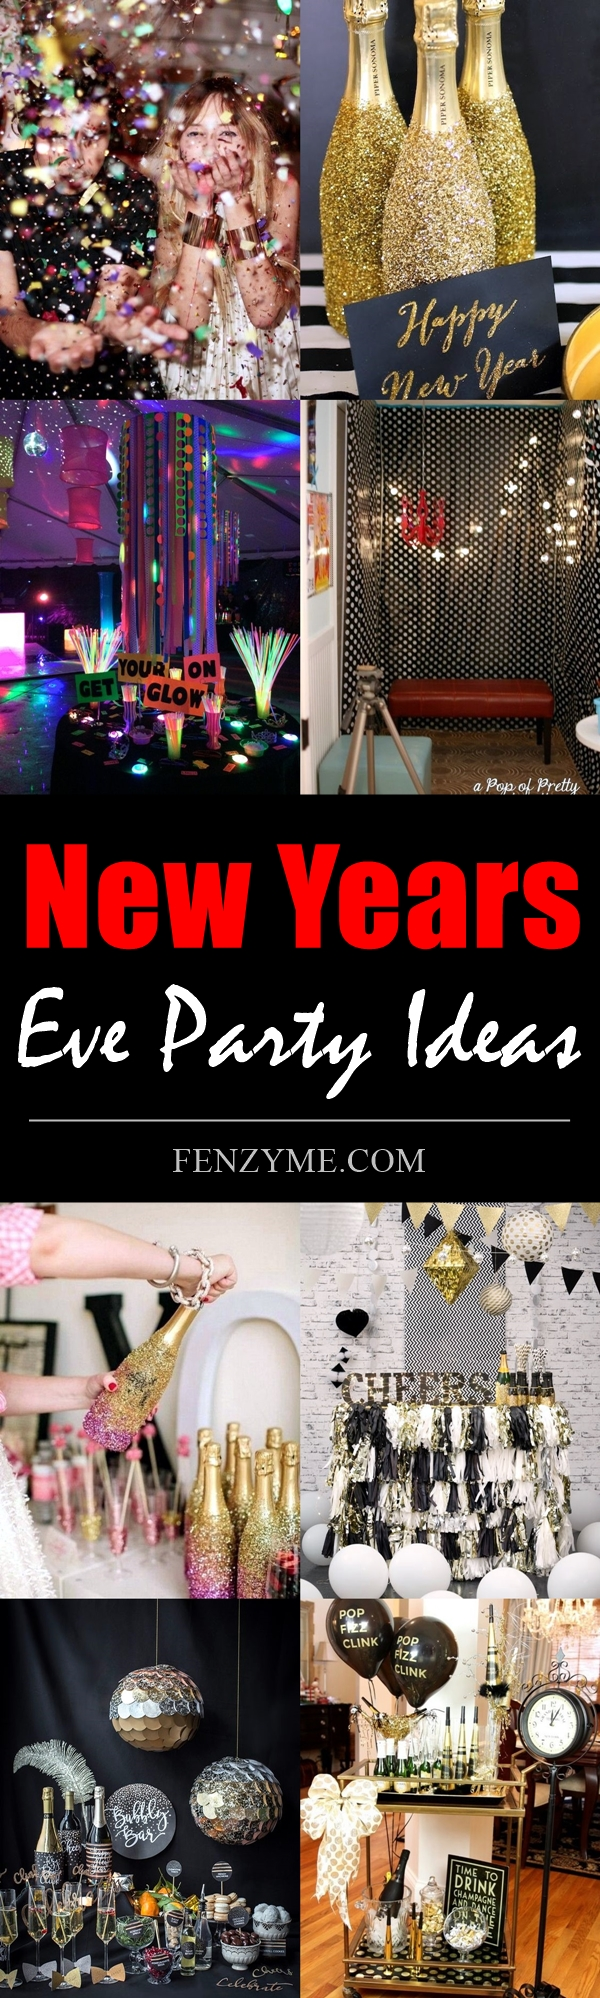 10 fun new years eve party ideas for 2018. Black Bedroom Furniture Sets. Home Design Ideas